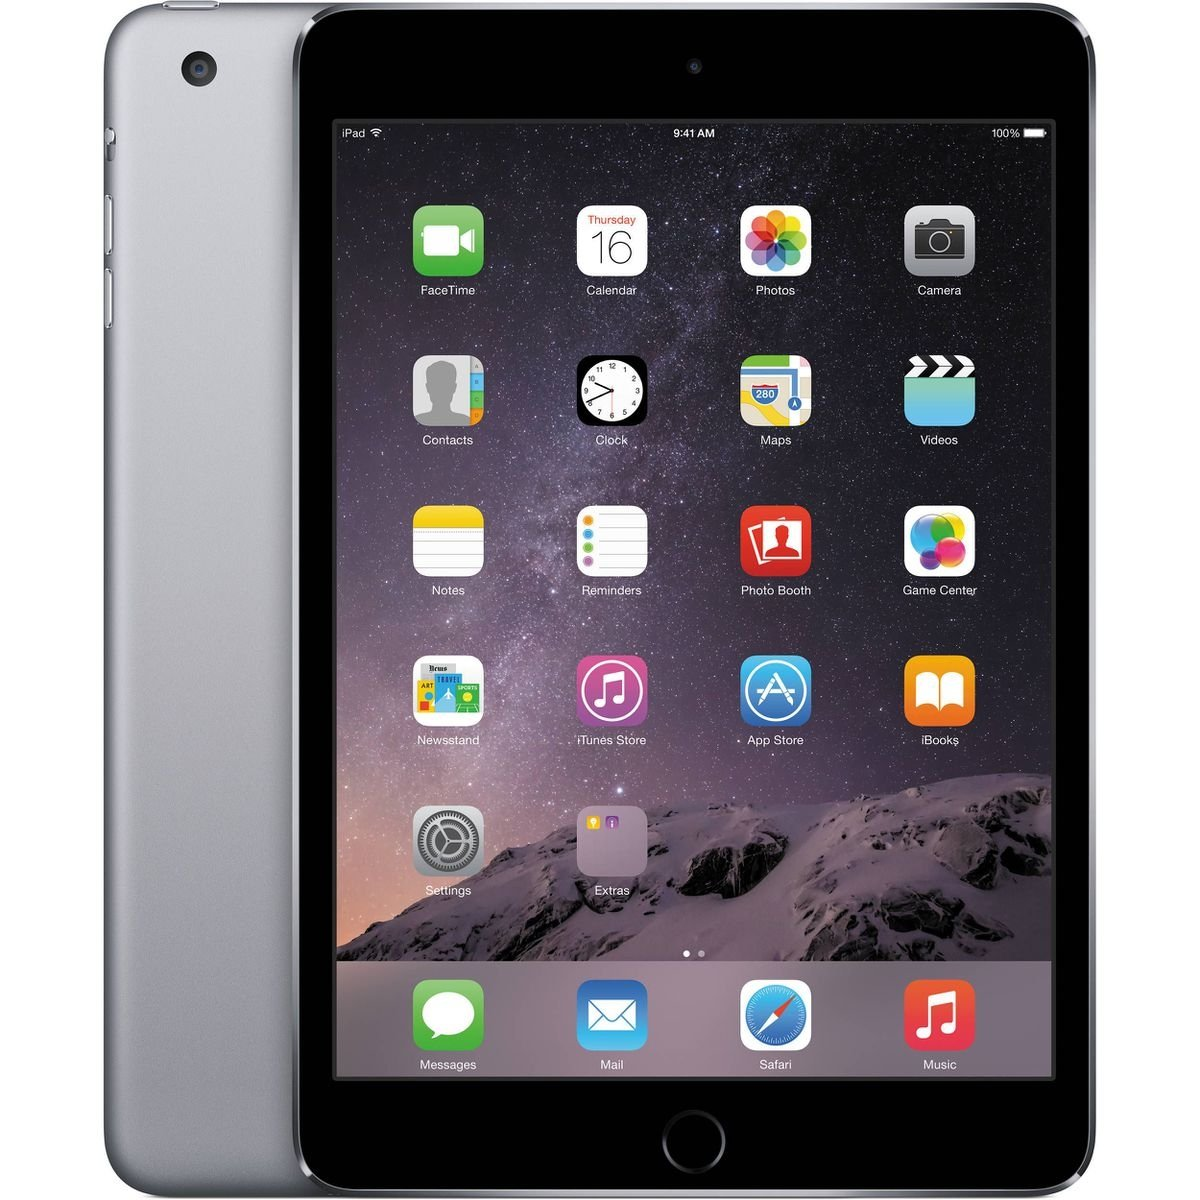 Планшет Apple iPad mini 4 Wi-Fi 128GB Space Gray Model A1538 MK9N2RK/A